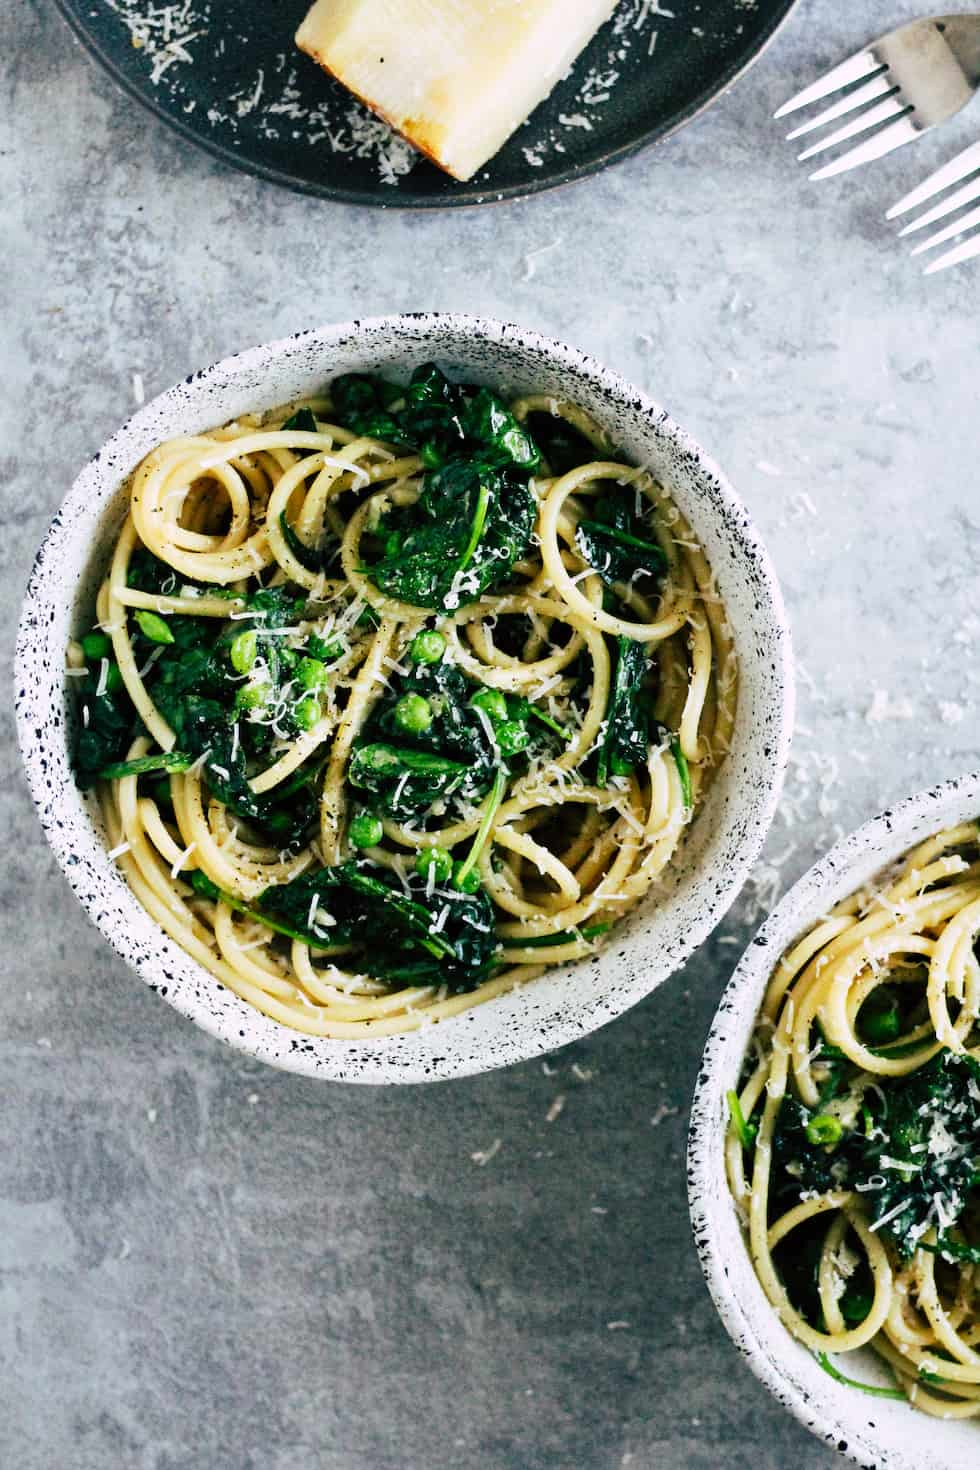 Pasta with cheese and greens in white bowls are easy college meals